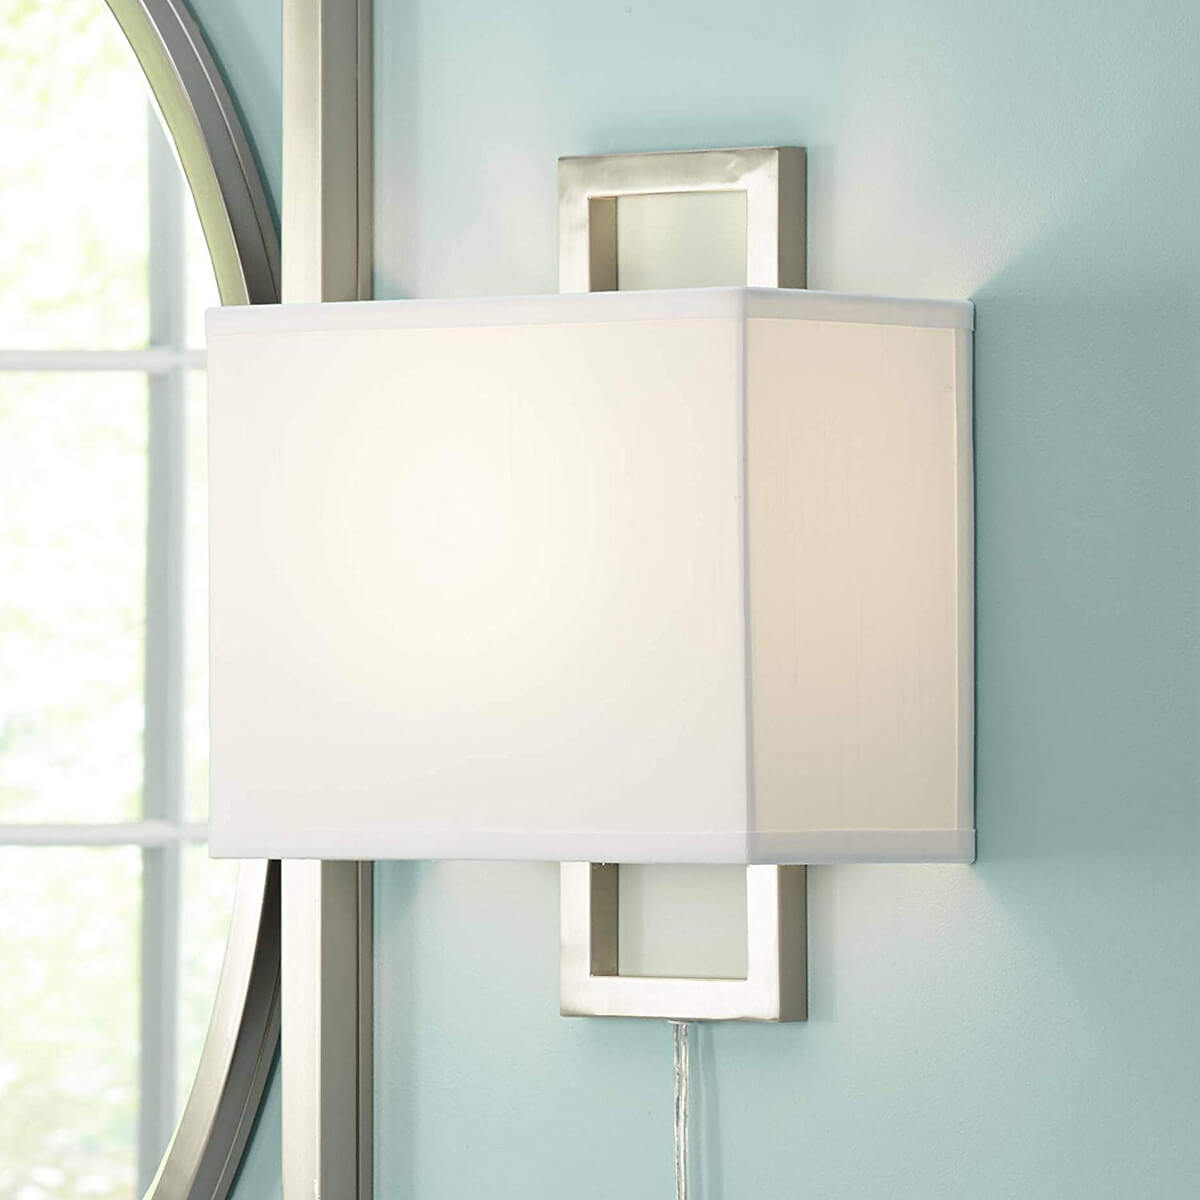 Minimalist Sconces Make an Inspiring Statement